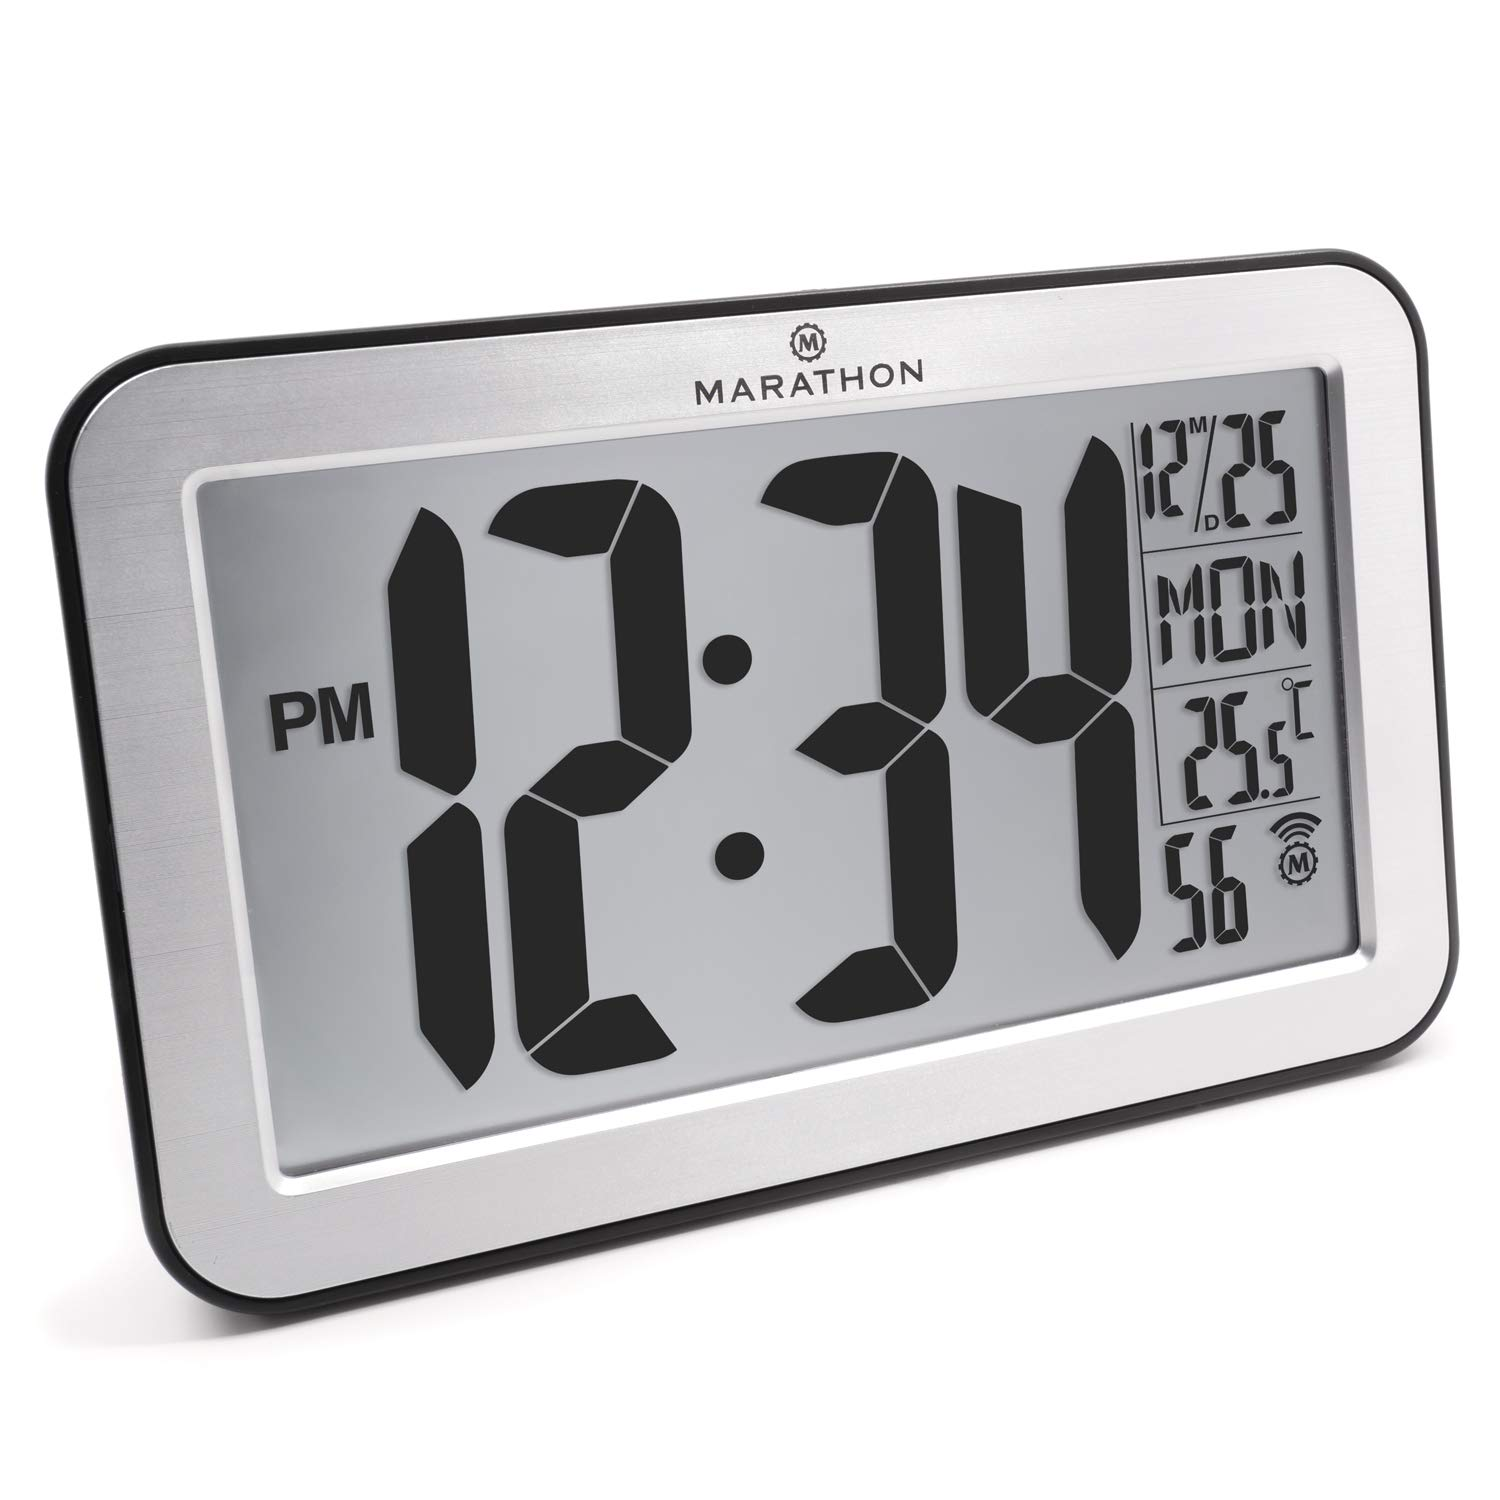 Marathon Commercial Grade Panoramic Atomic Wall Clock with Table Stand - Batteries Included, Color-Brushed Silver, SKU-CL030033SV